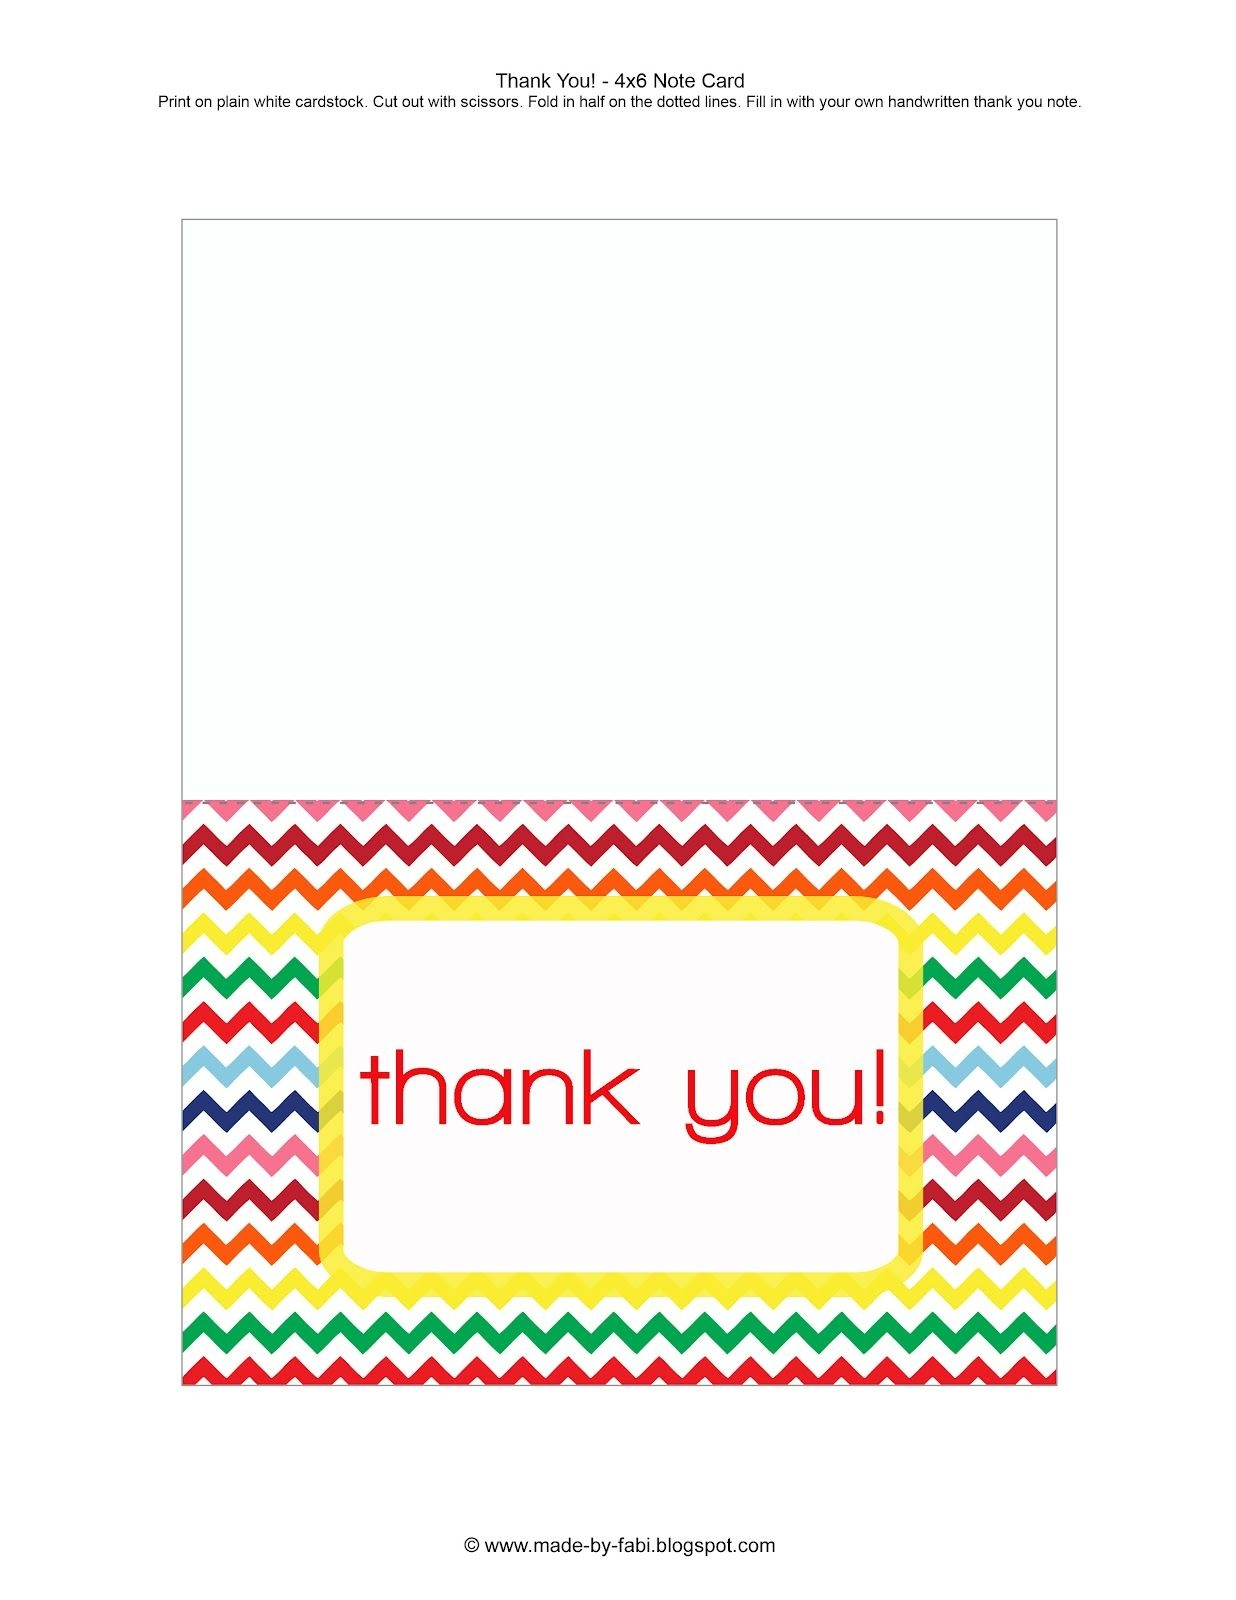 Printable Thank You Cards For Students - Printable Cards - Free Printable Thinking Of You Cards